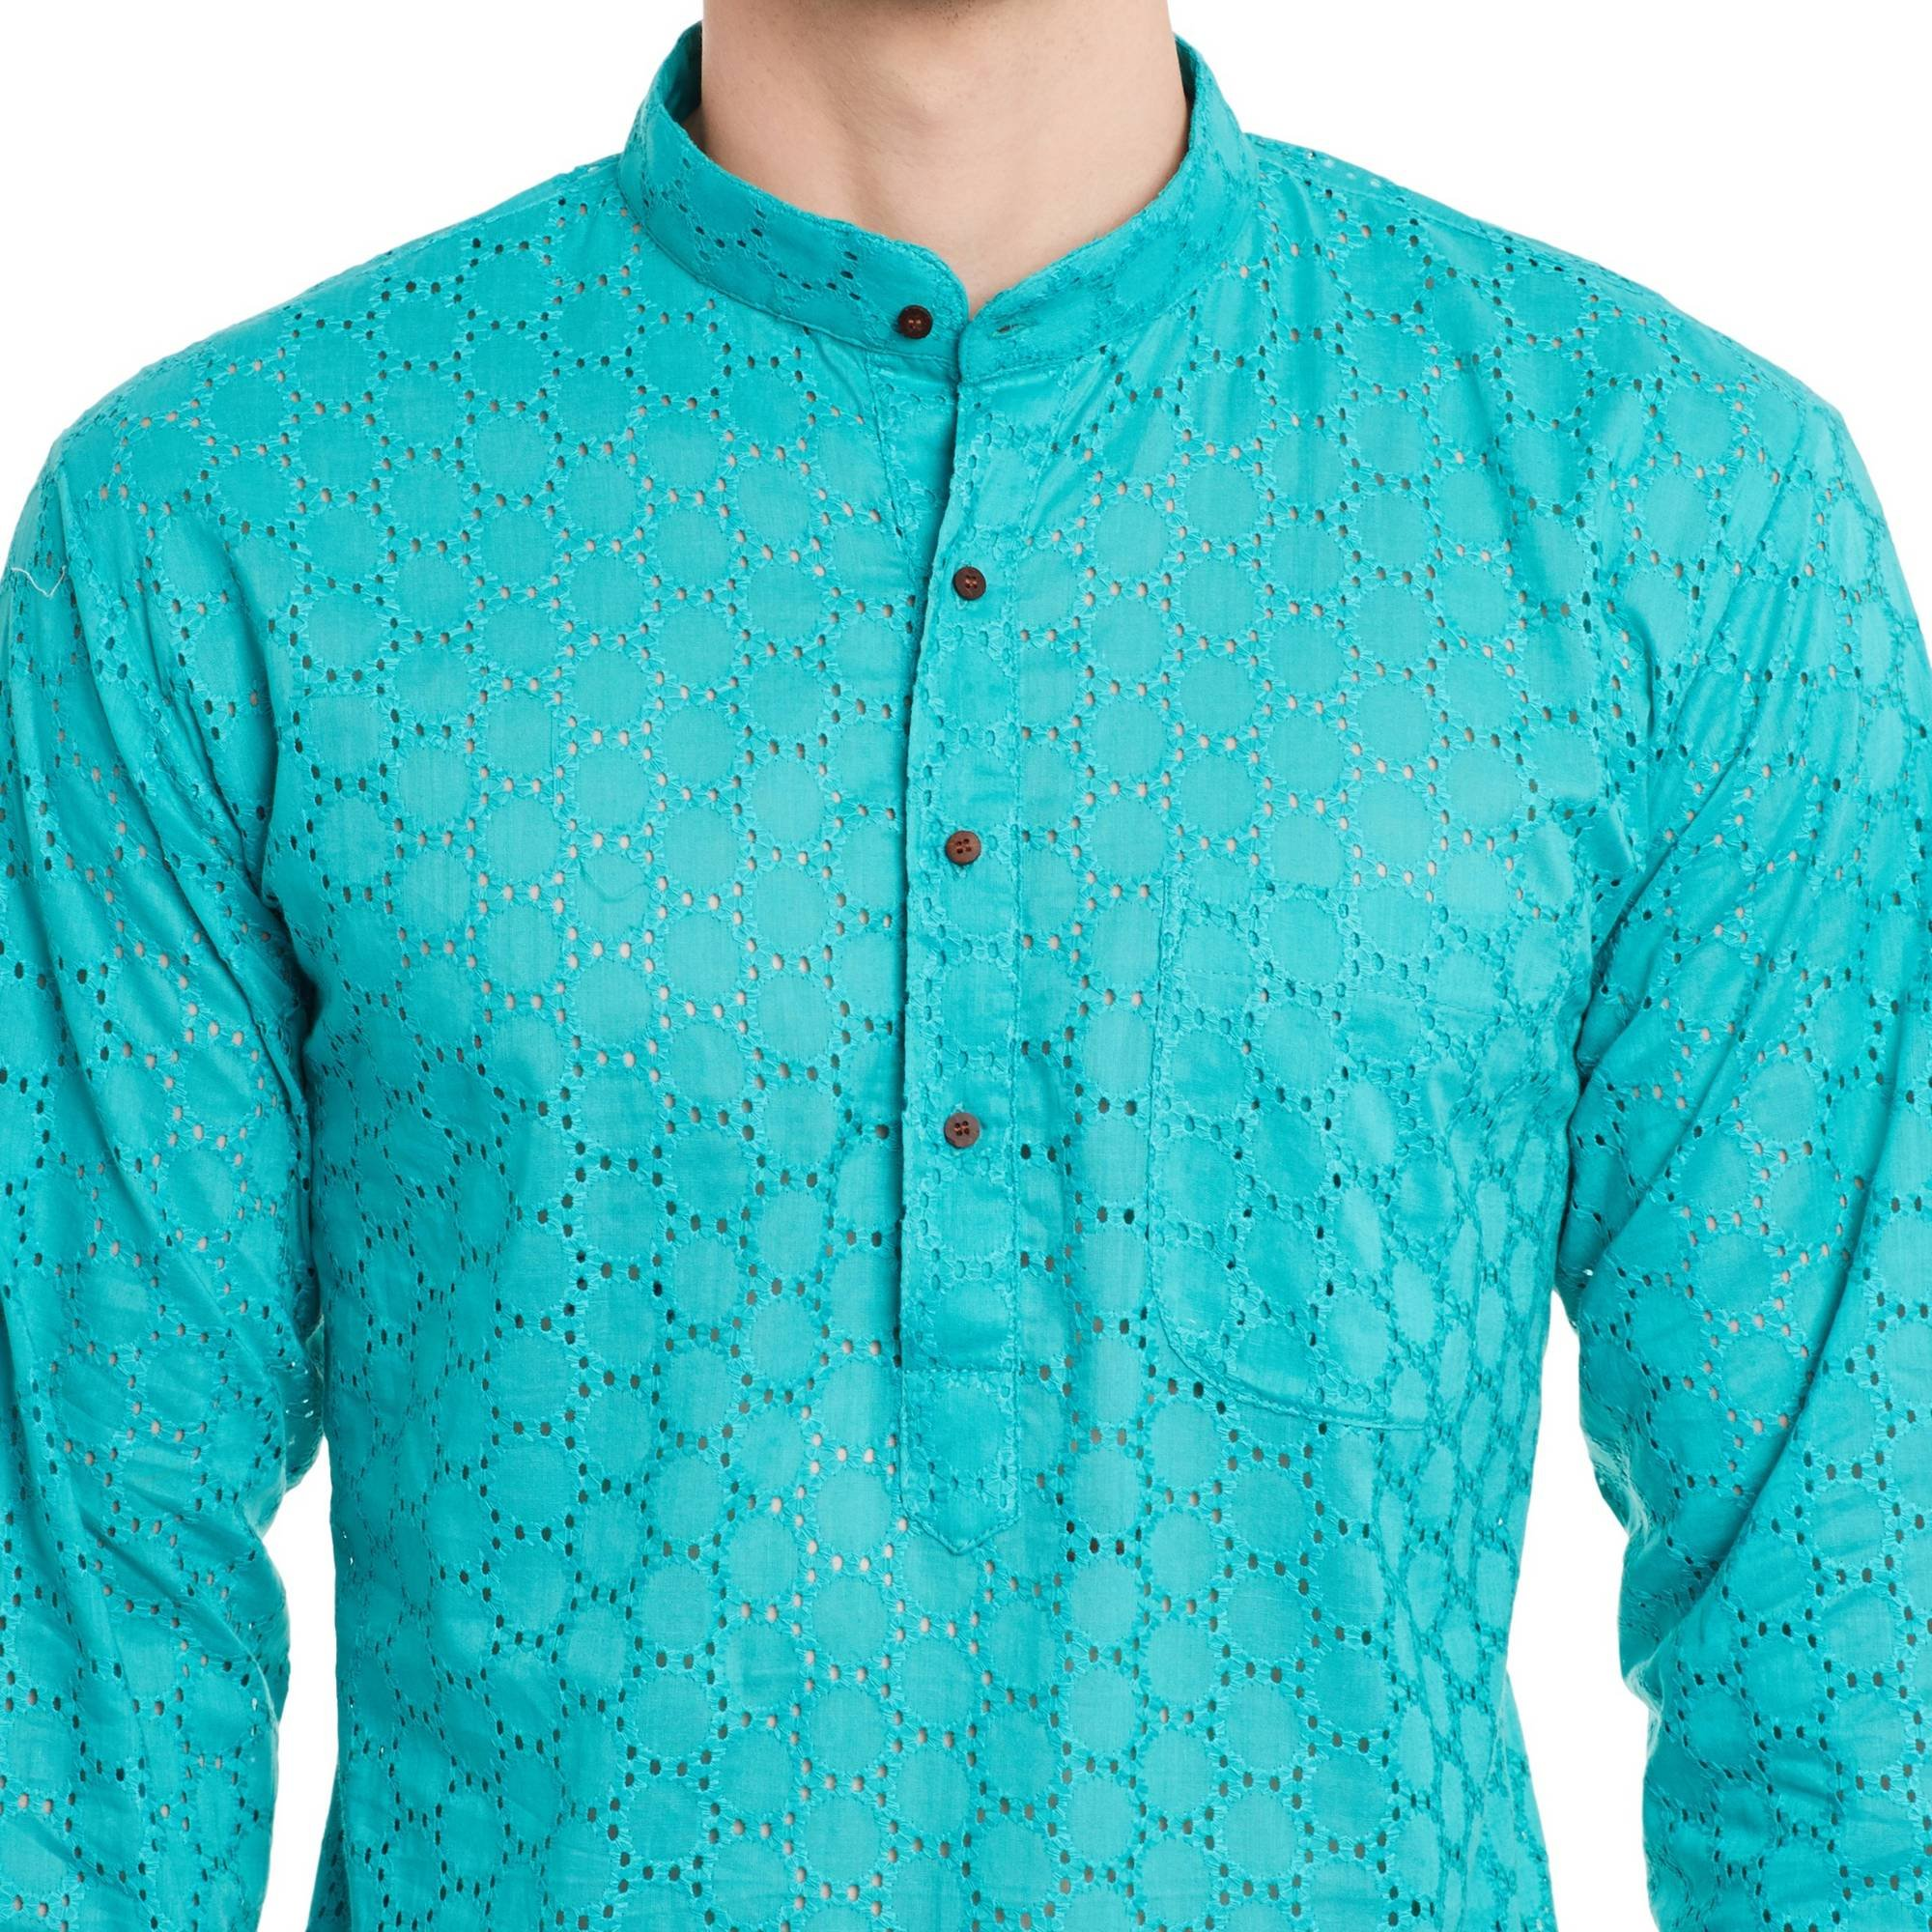 Mens Embroidered Cutwork Cotton Kurta With Churidar Pajama Trousers Machine Embroidery,Turquoise Chest Size: 34 Inch by ShalinIndia (Image #5)